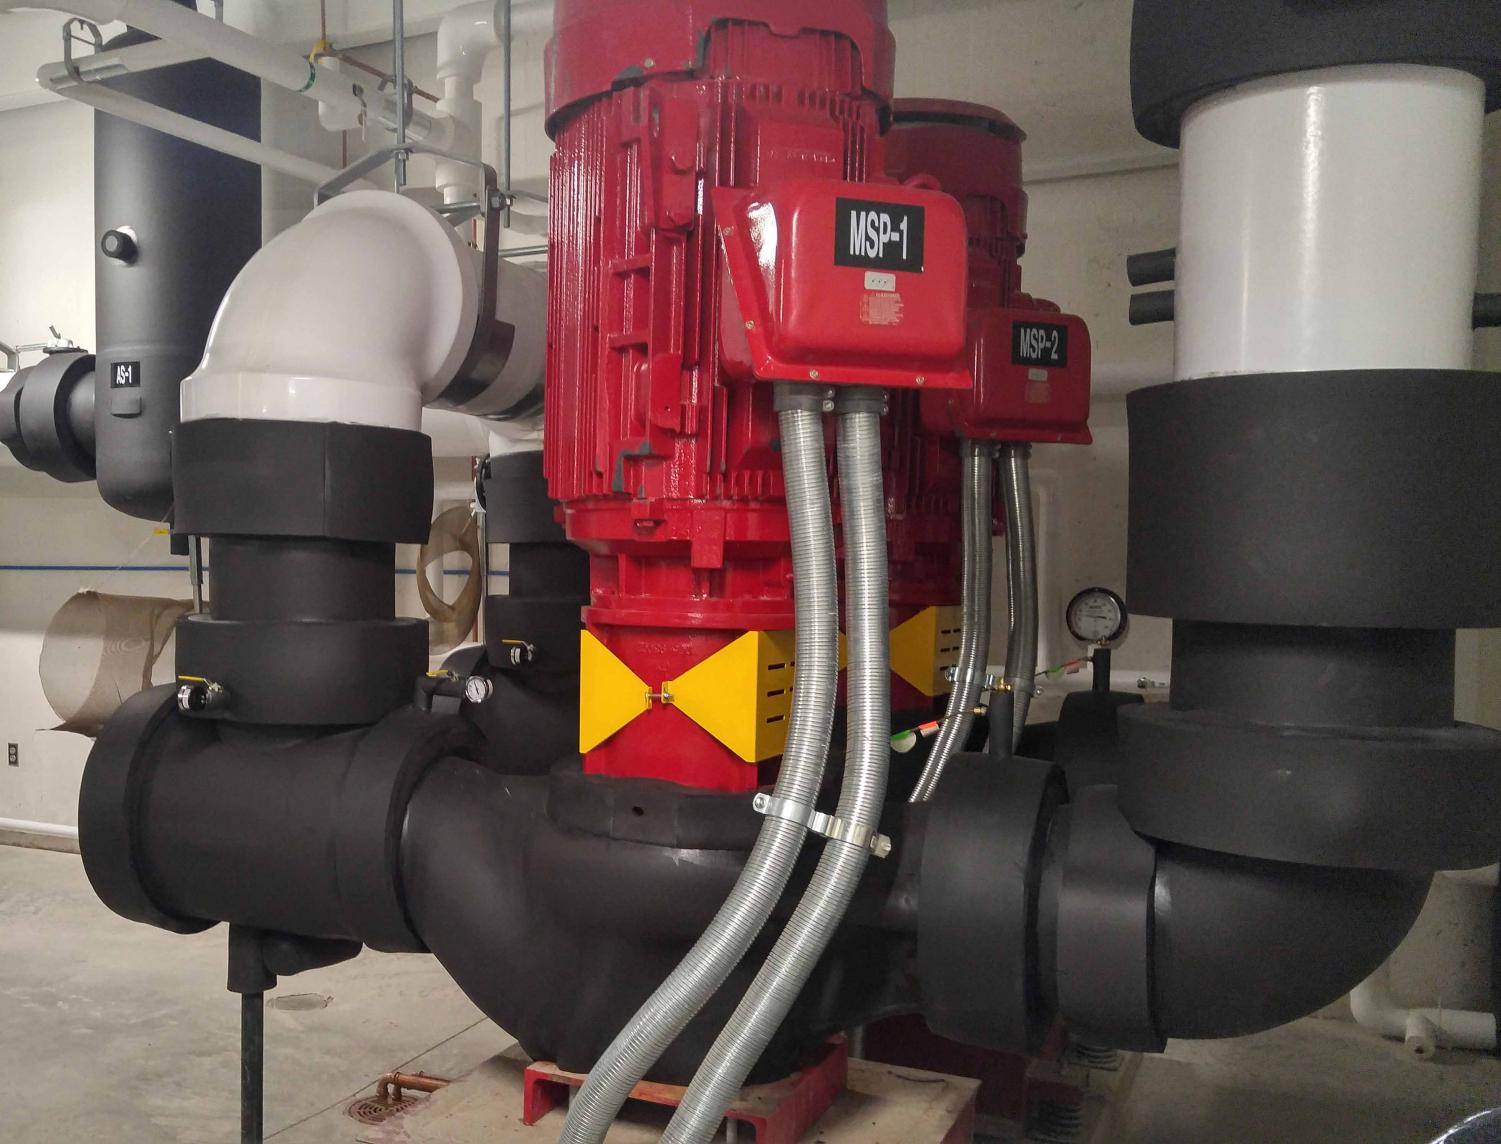 These are motors with 2000 horsepower that forces water through the pipes and around the building. Only one is working at each time, while the second is used as a backup.